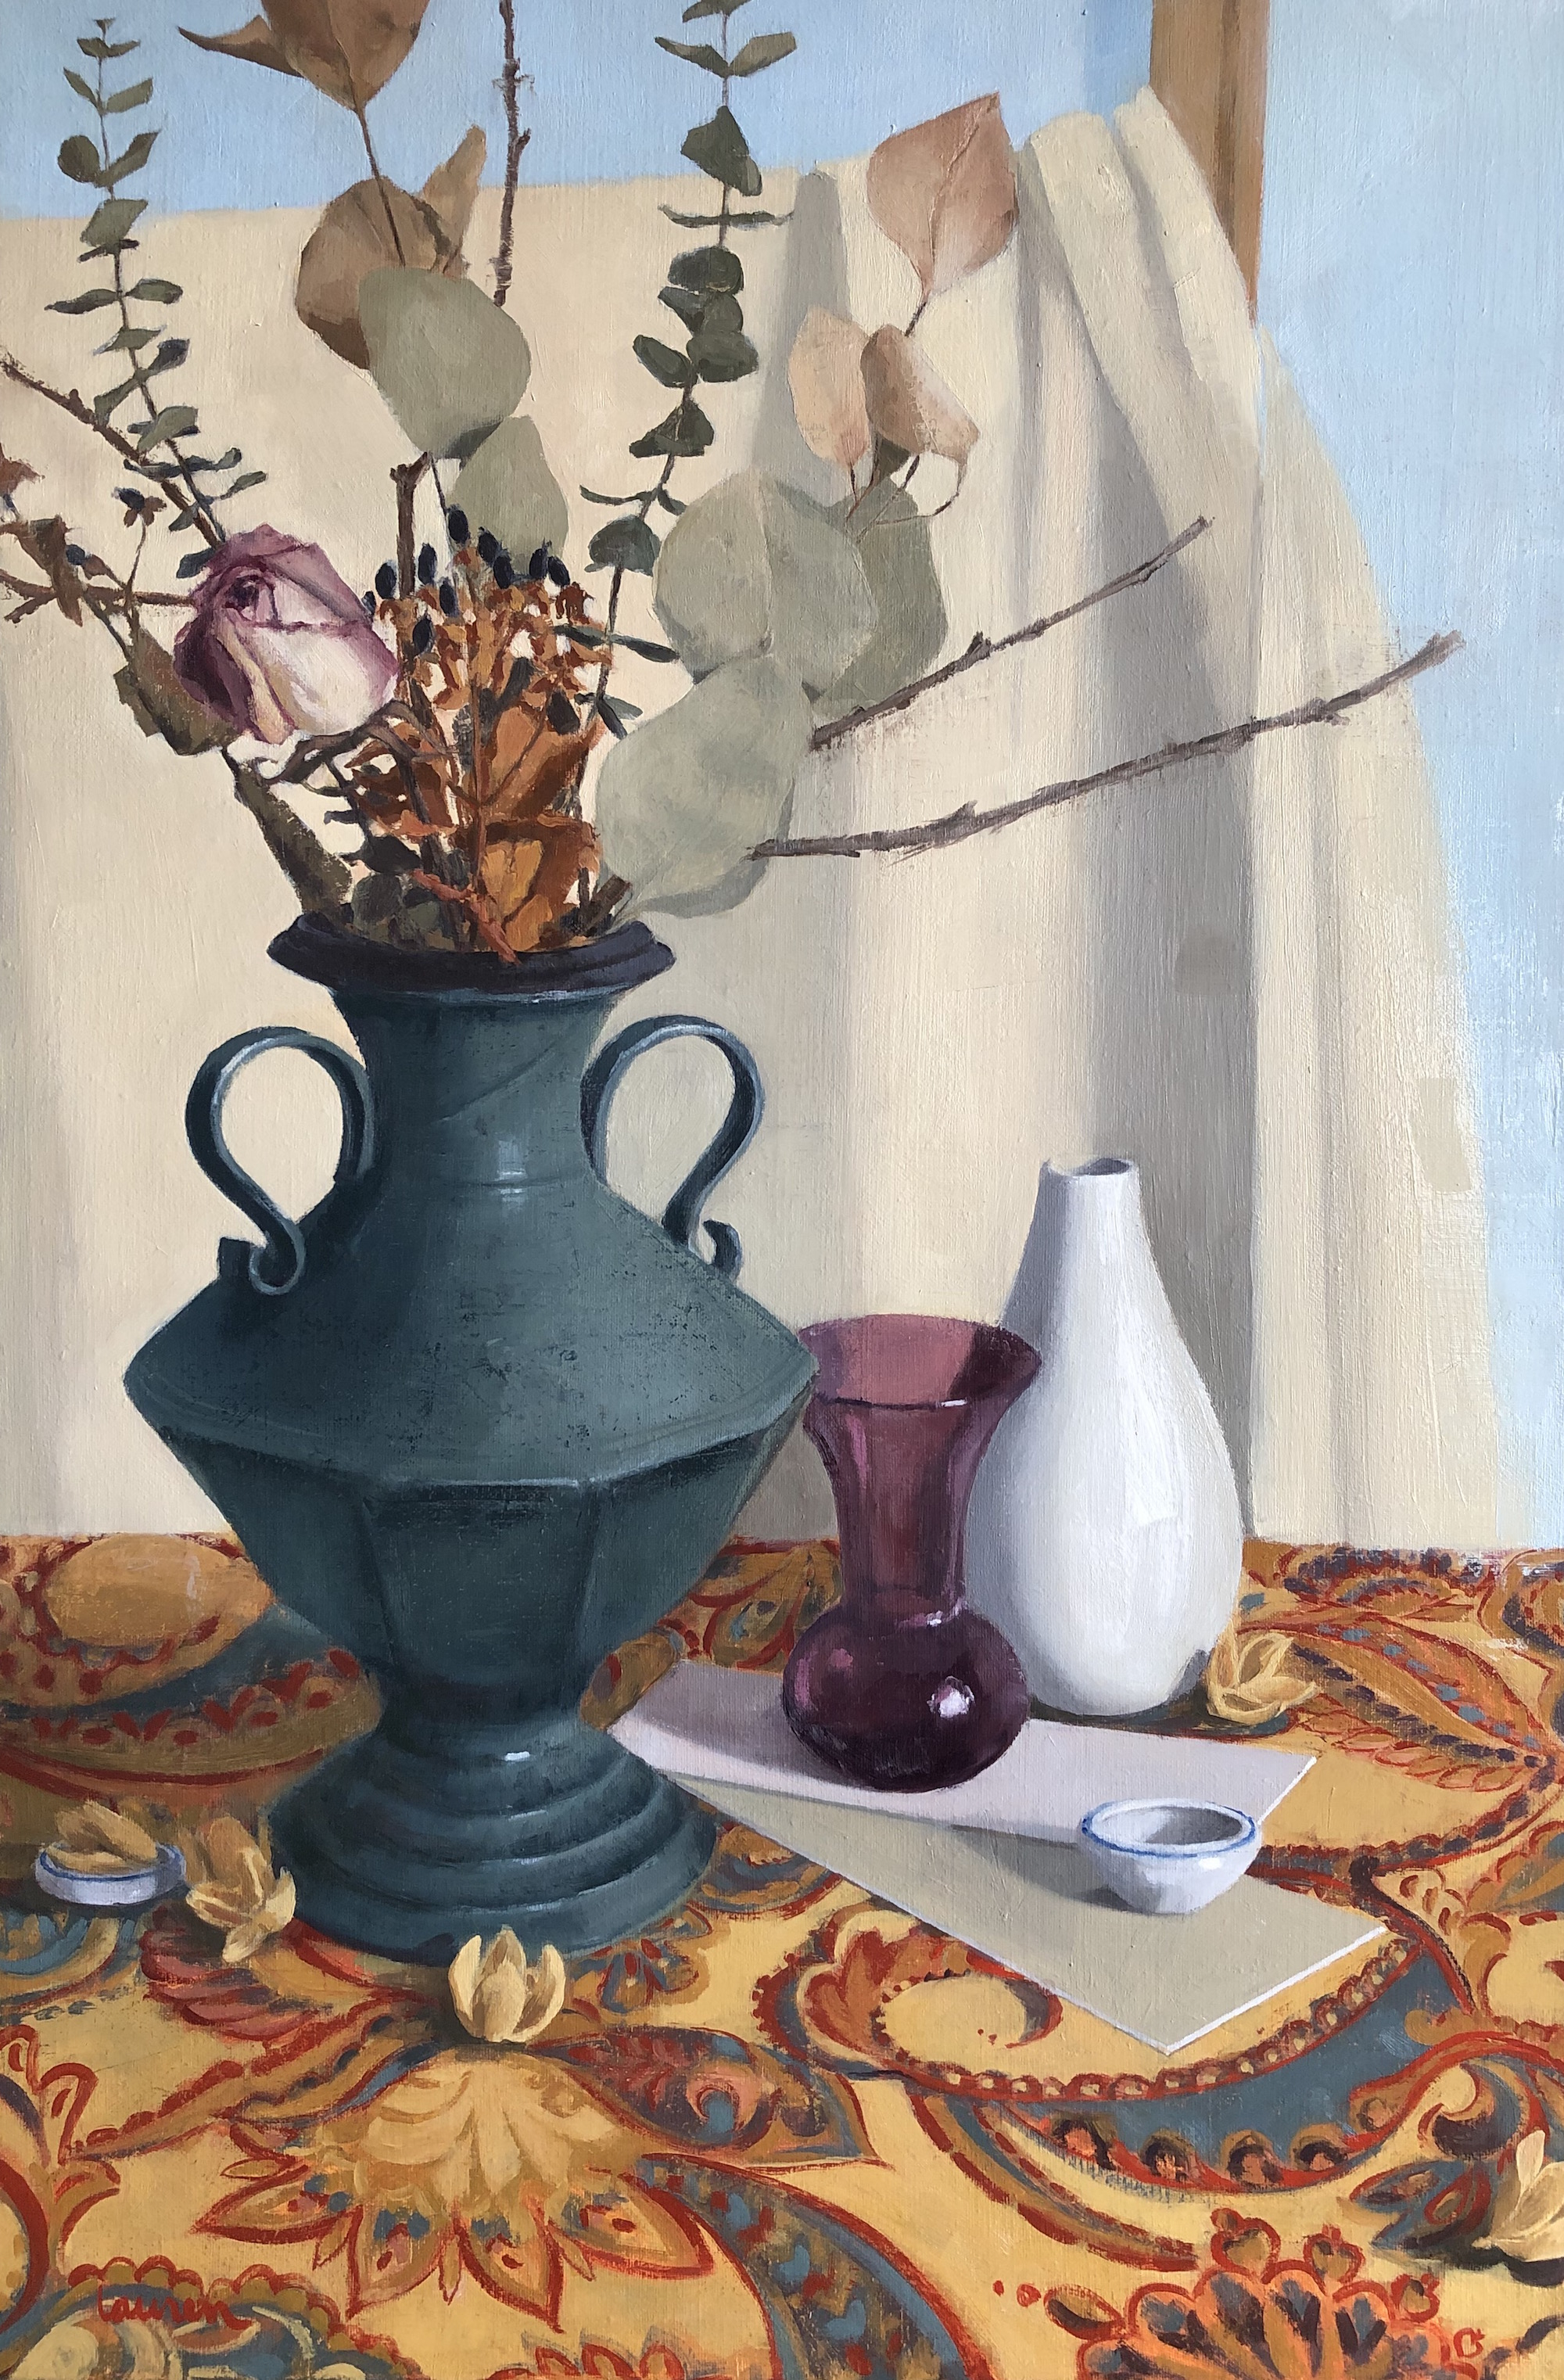 Copy of Still Life with Ceramic Vessel